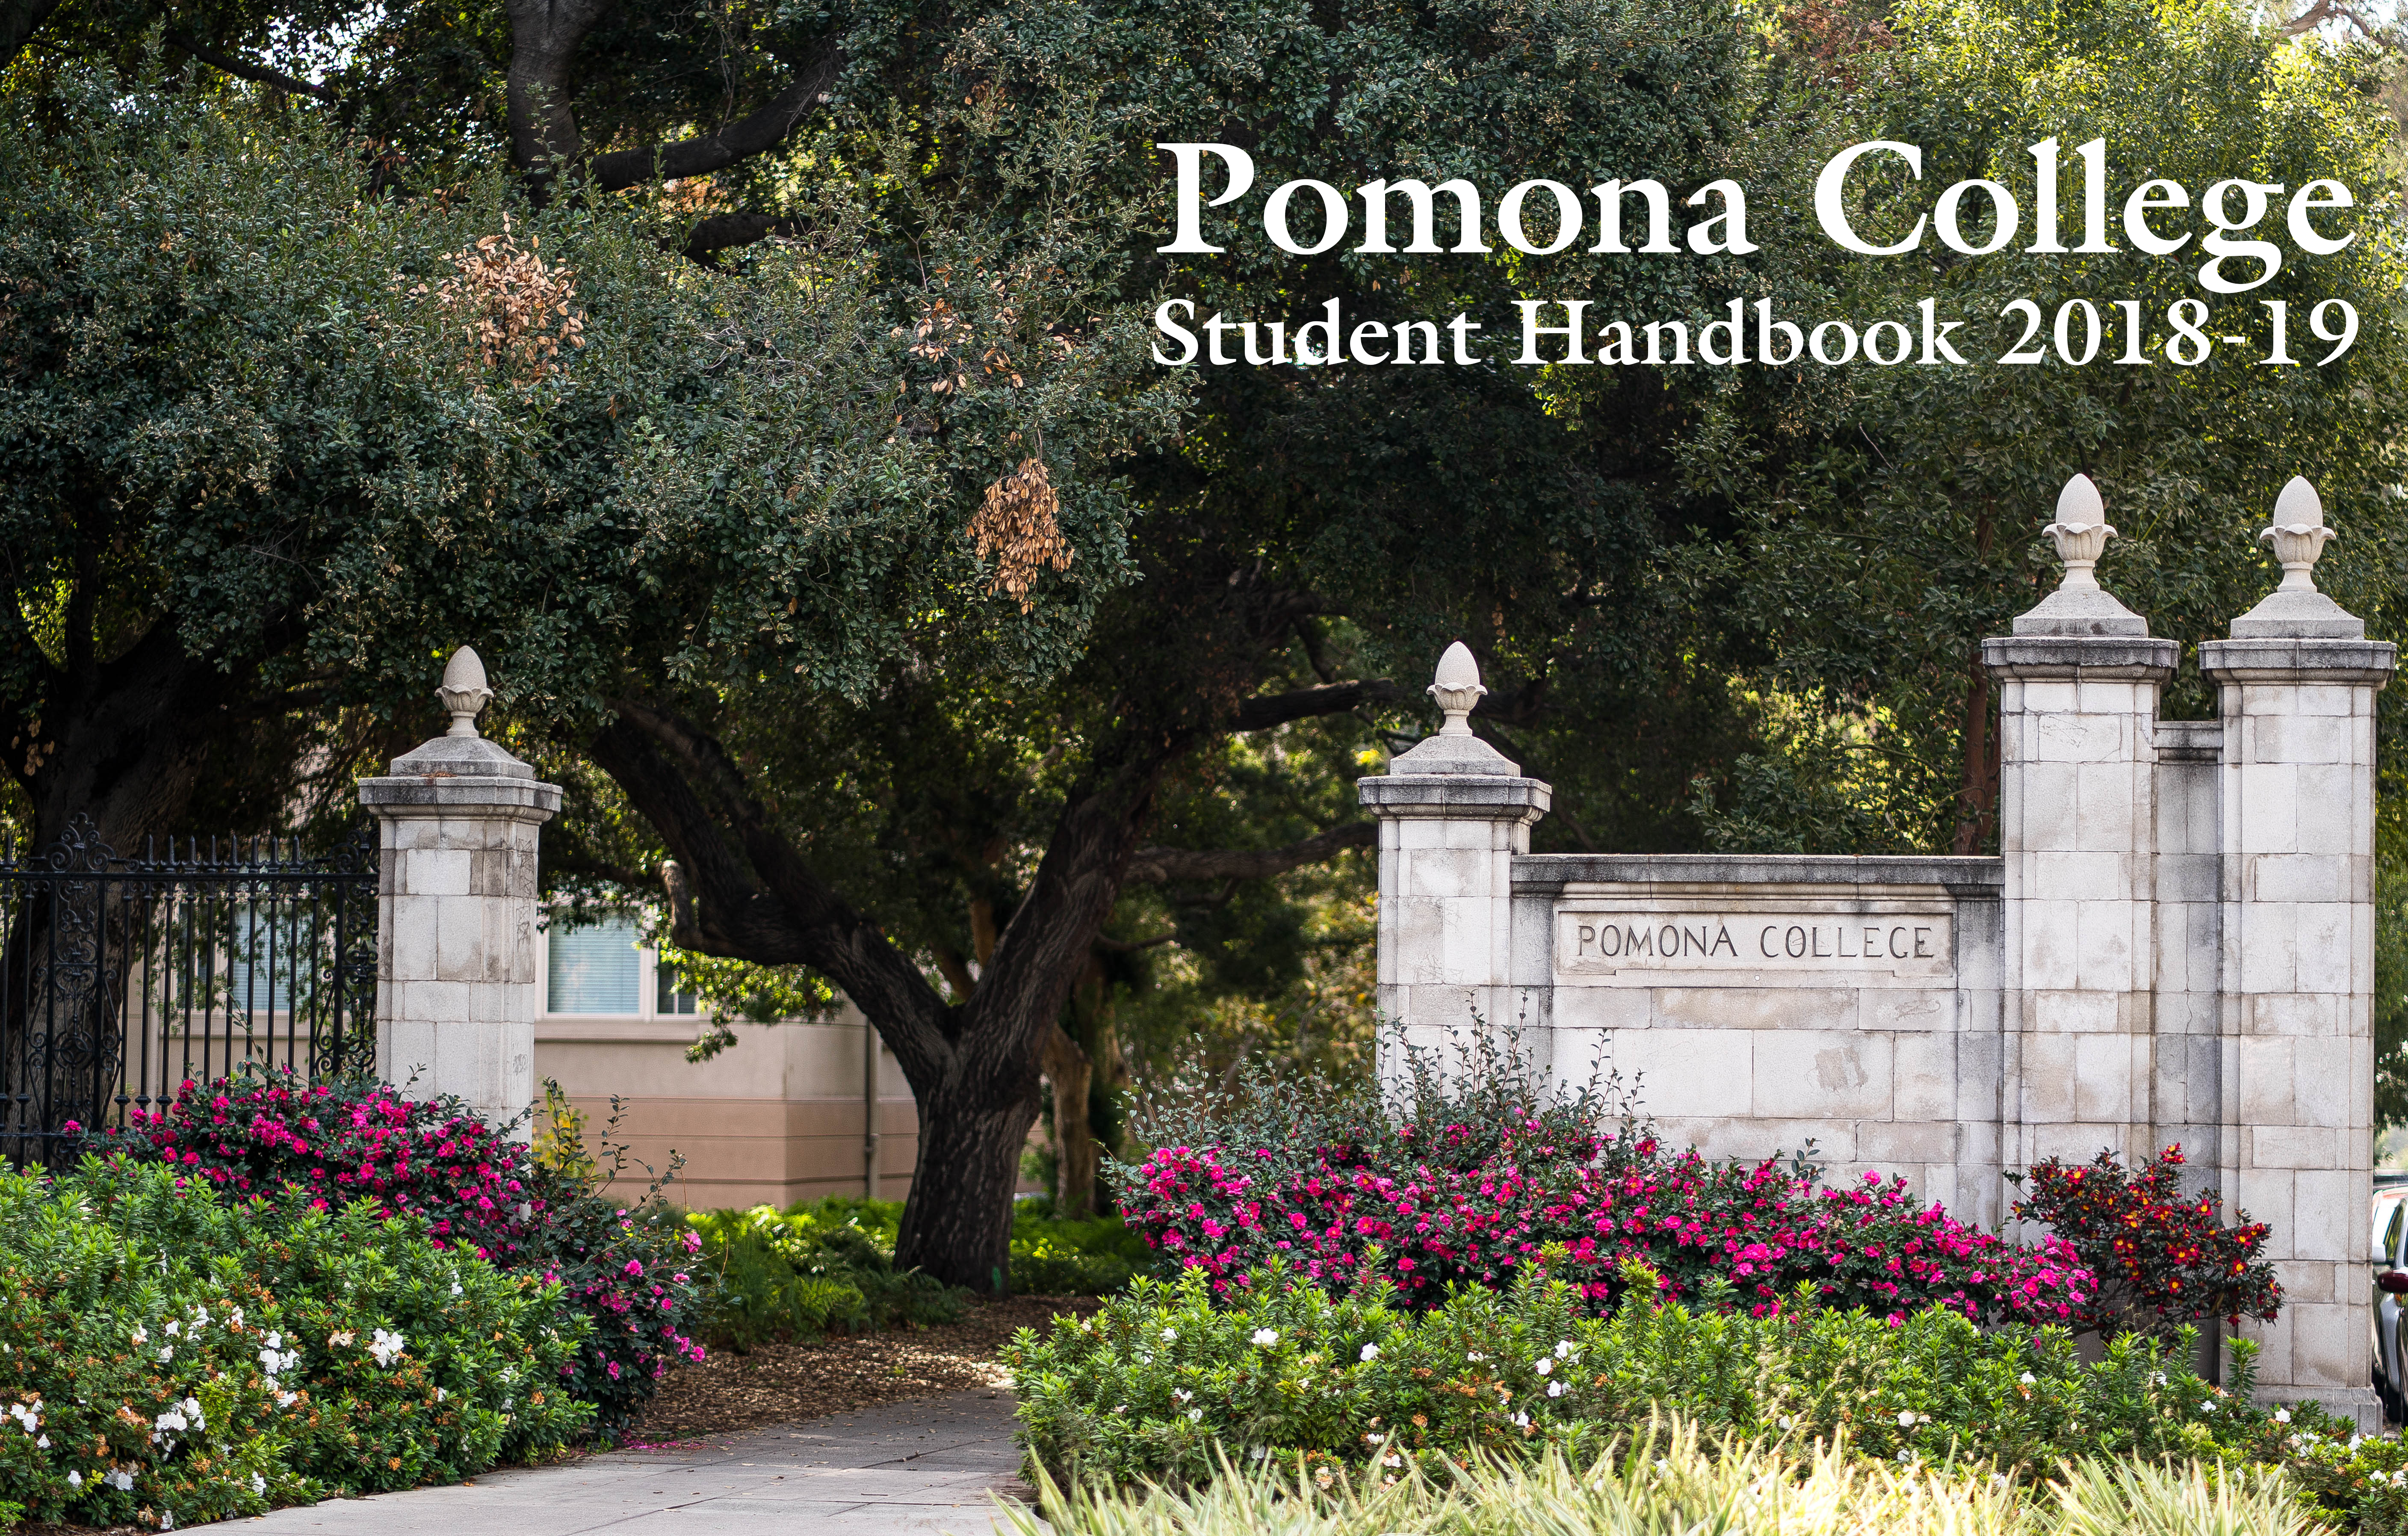 Pomona College entry gates on the corner of College Avenue and 6th Street